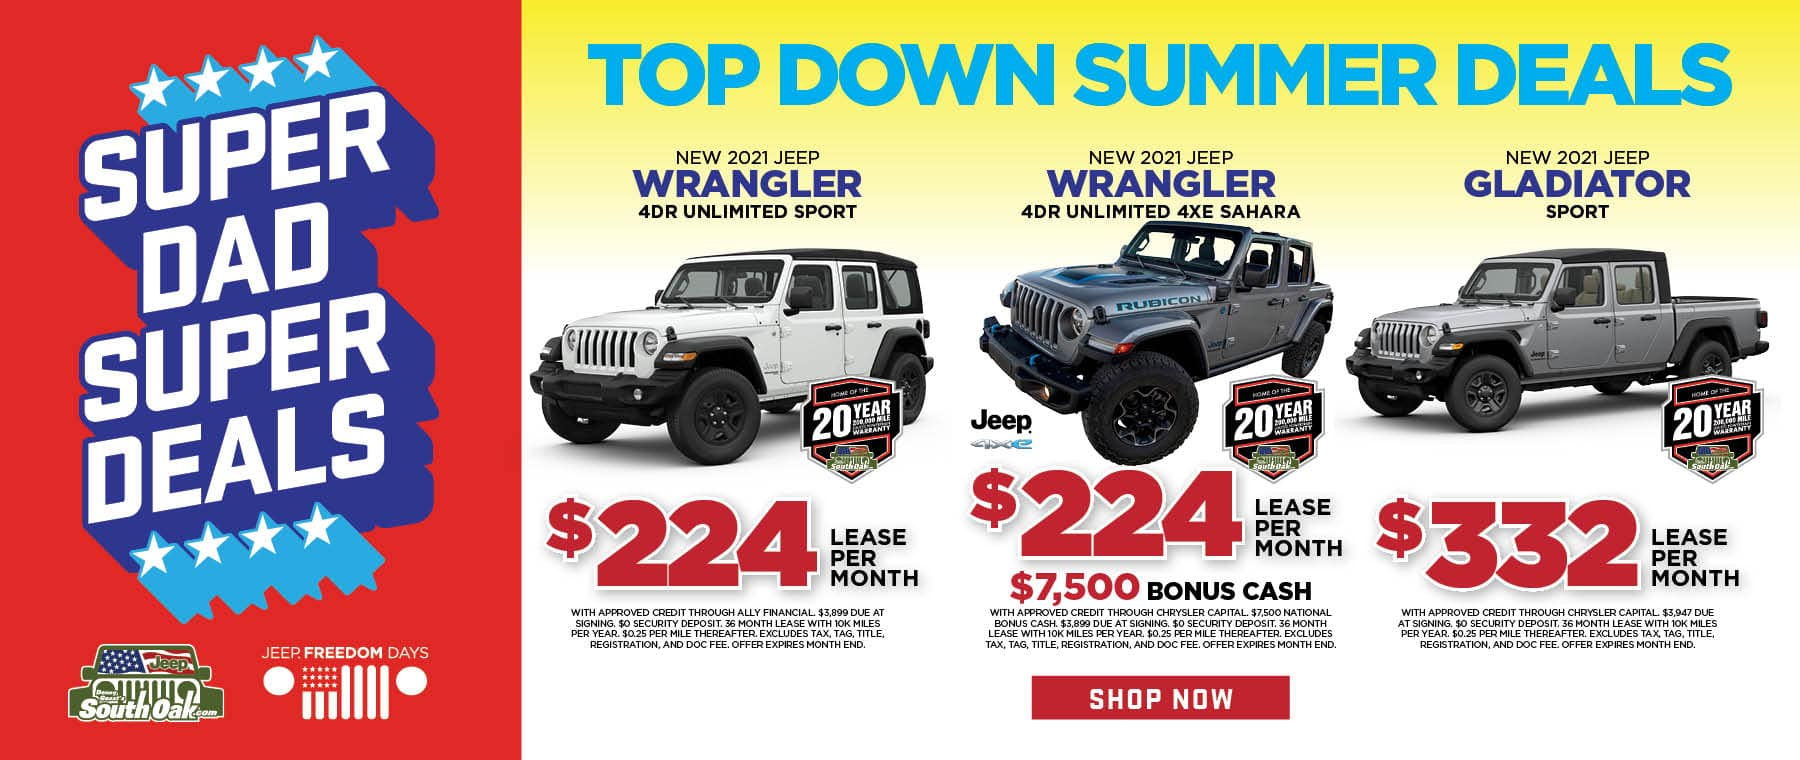 2021 Jeep Wrangler Lease Deal